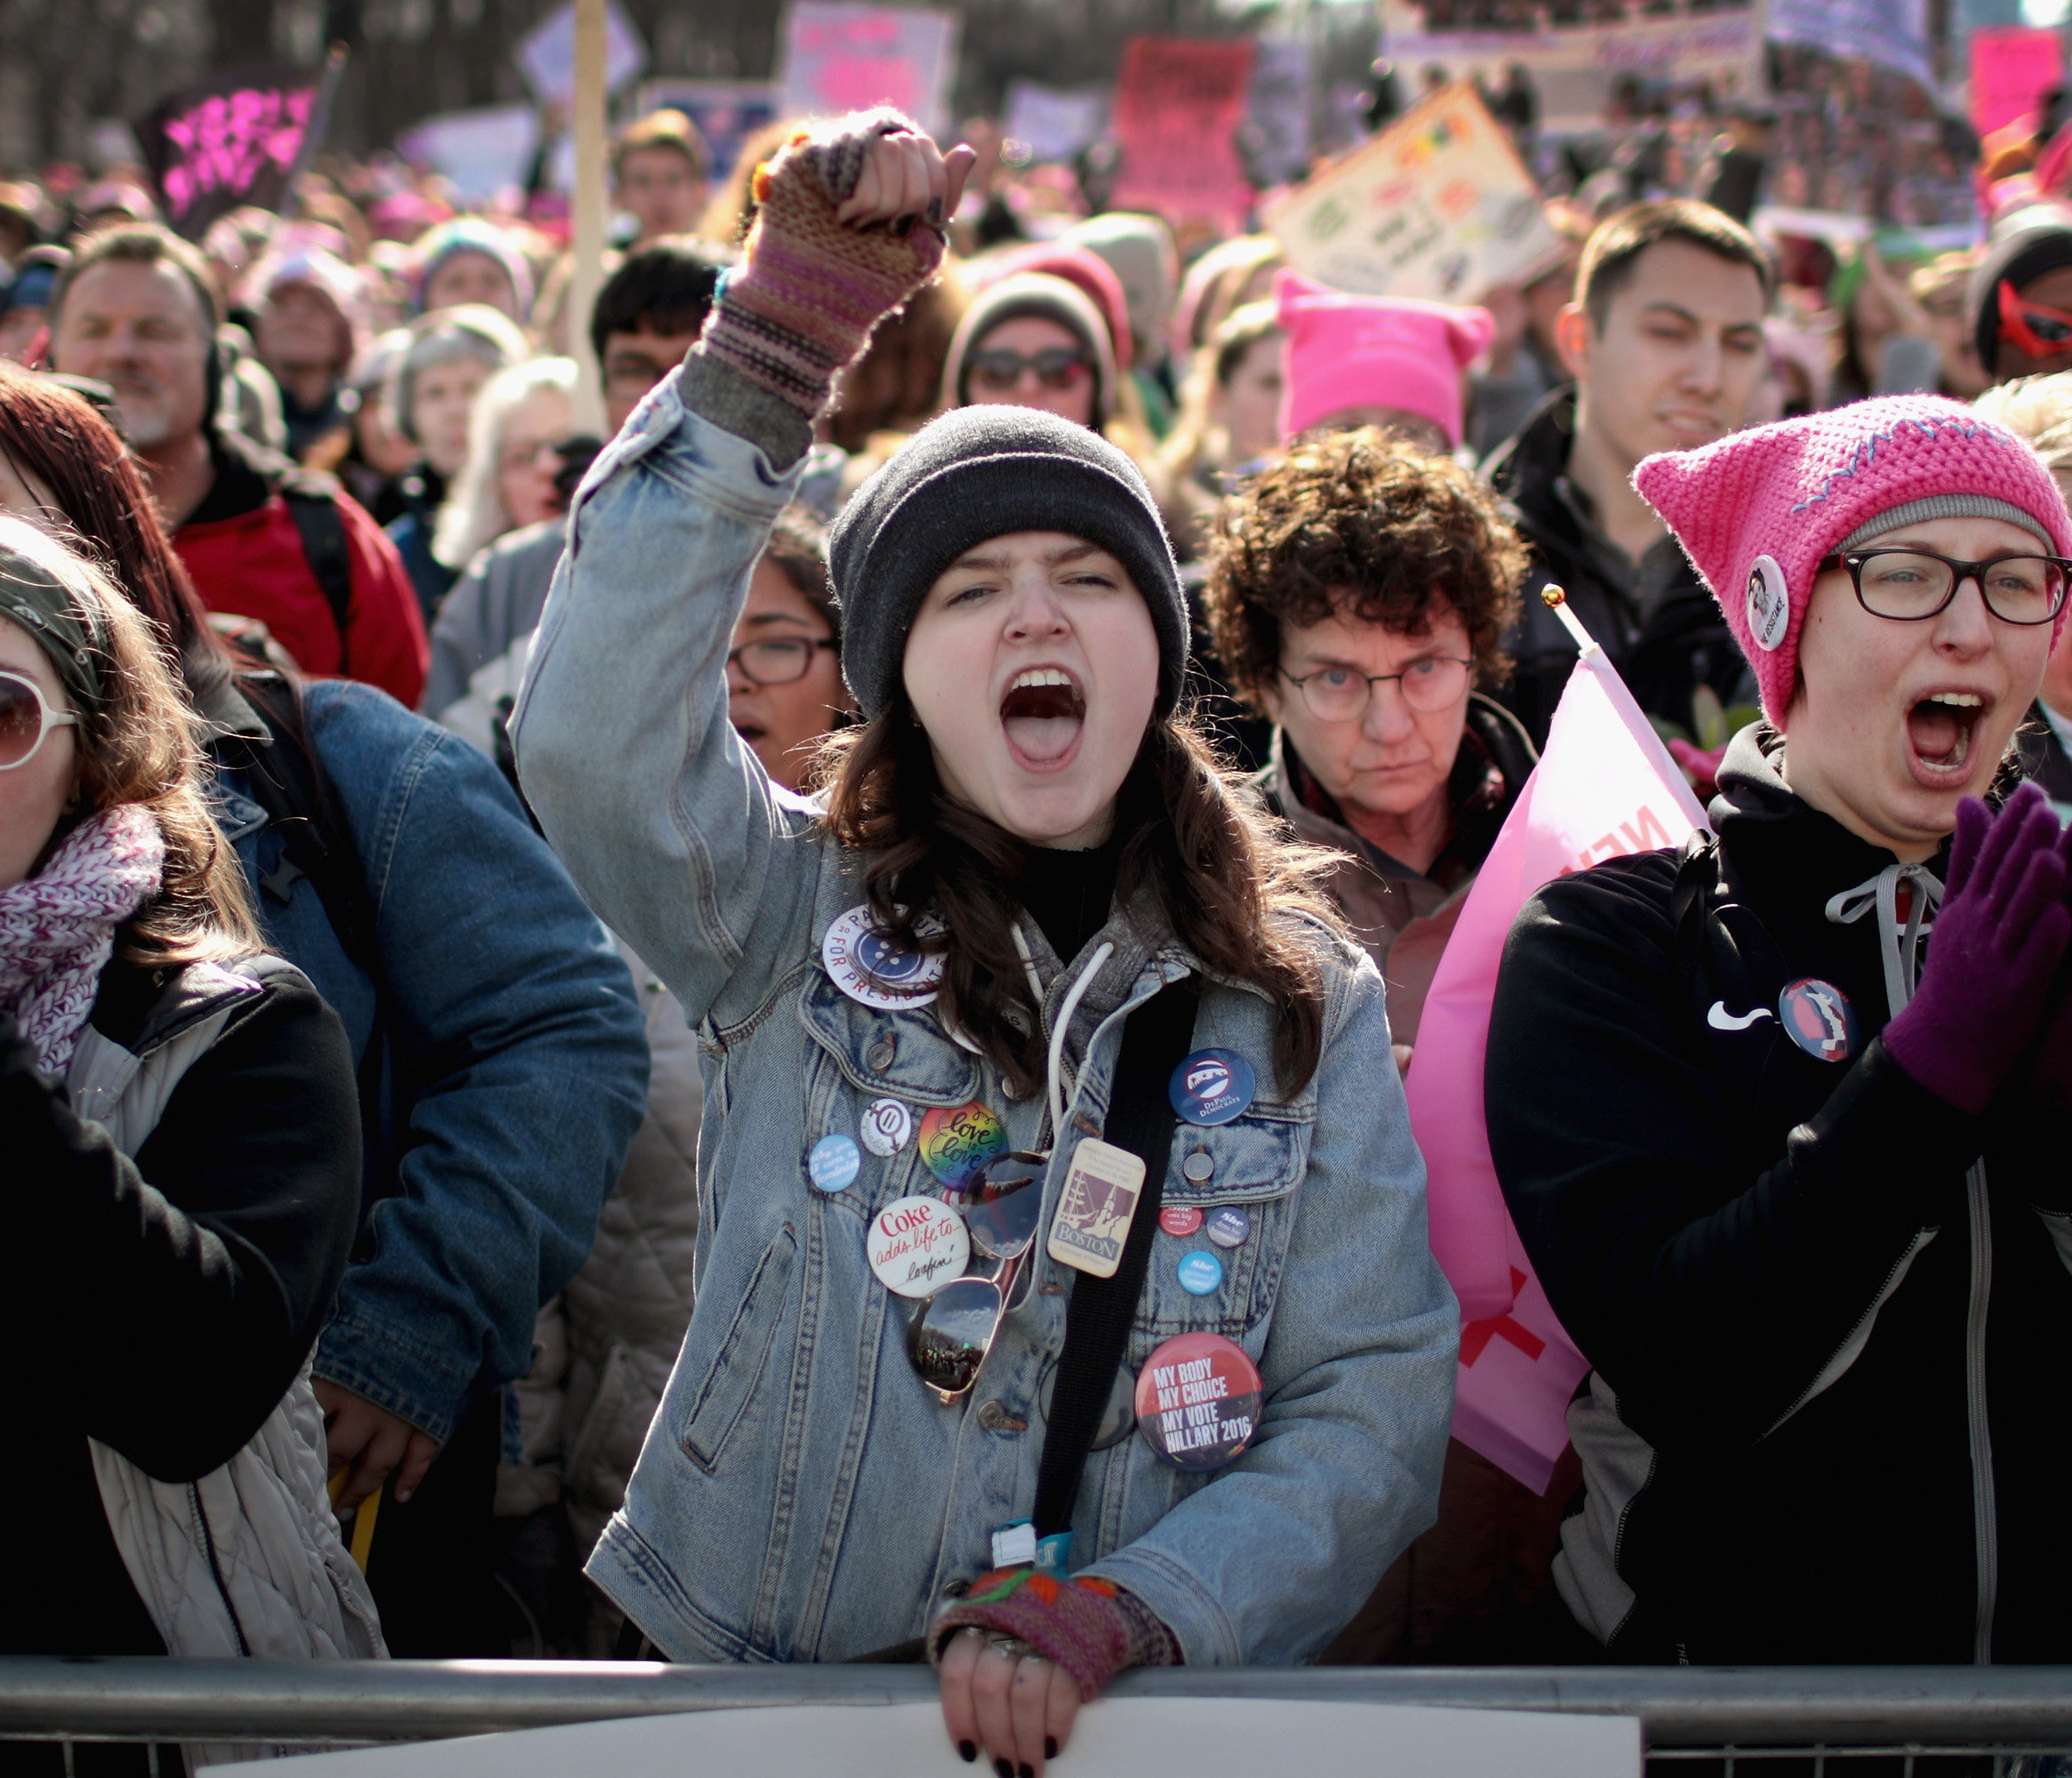 This year's Women's March in America was another example of the fight for gender equality